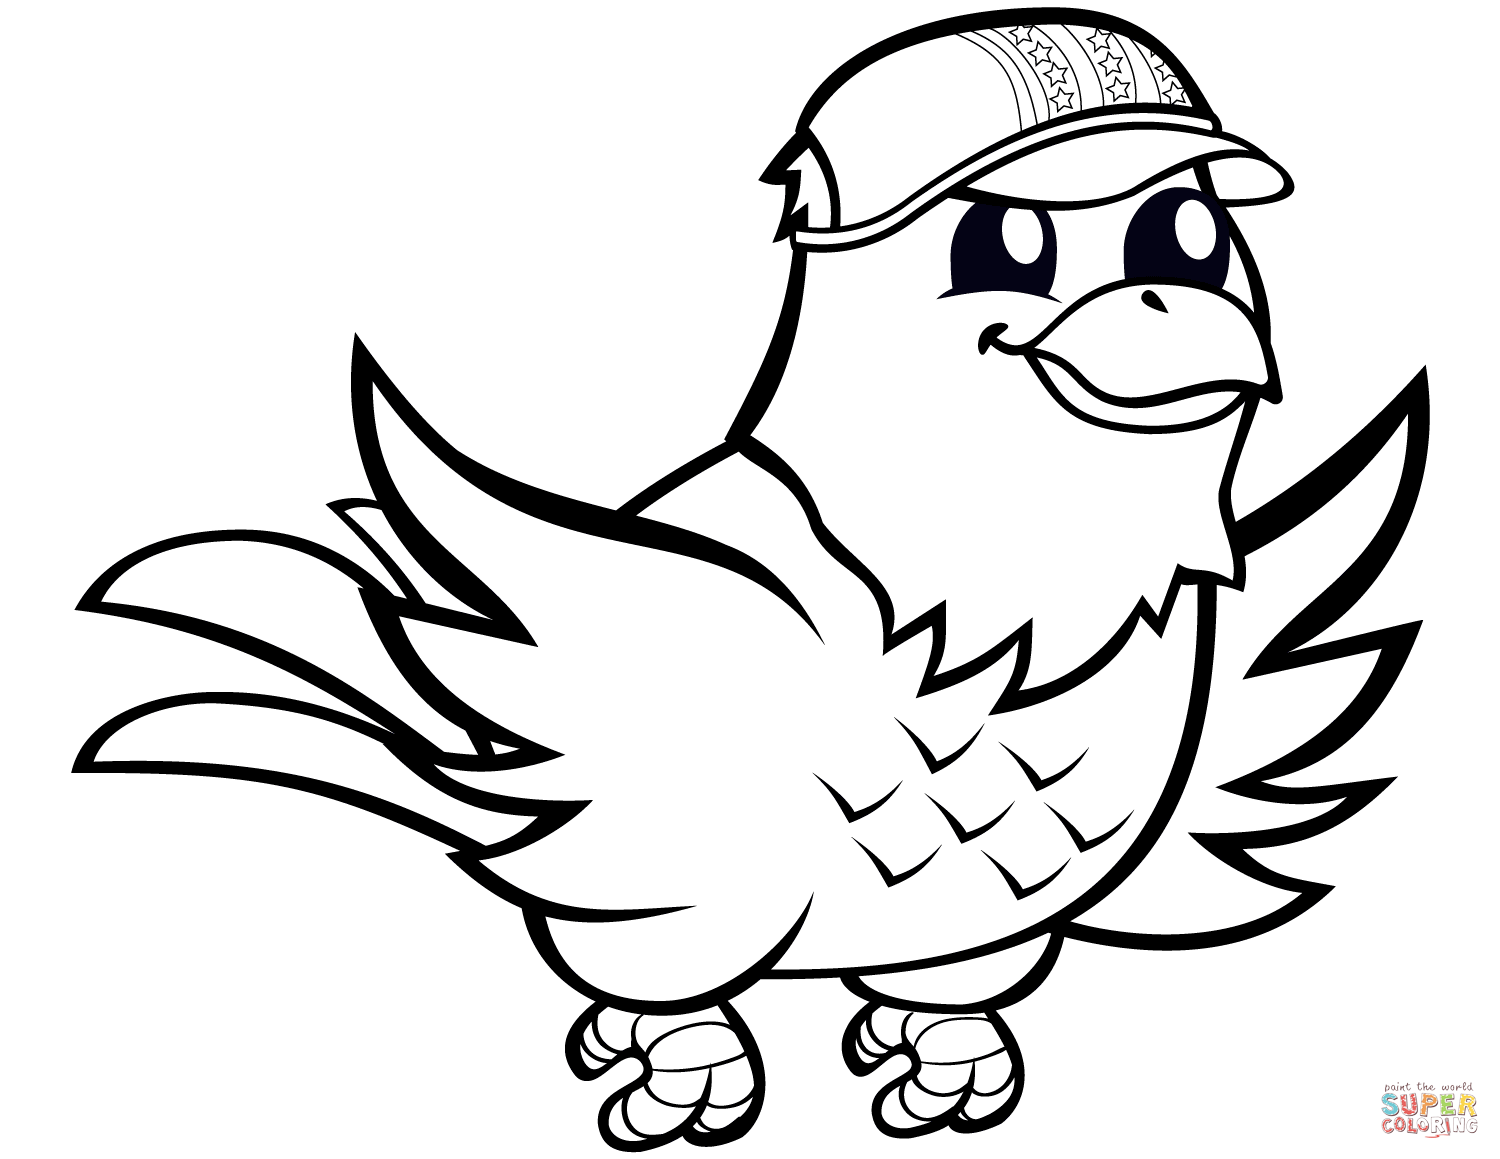 Funny Eagle With Baseball Cap Coloring Page